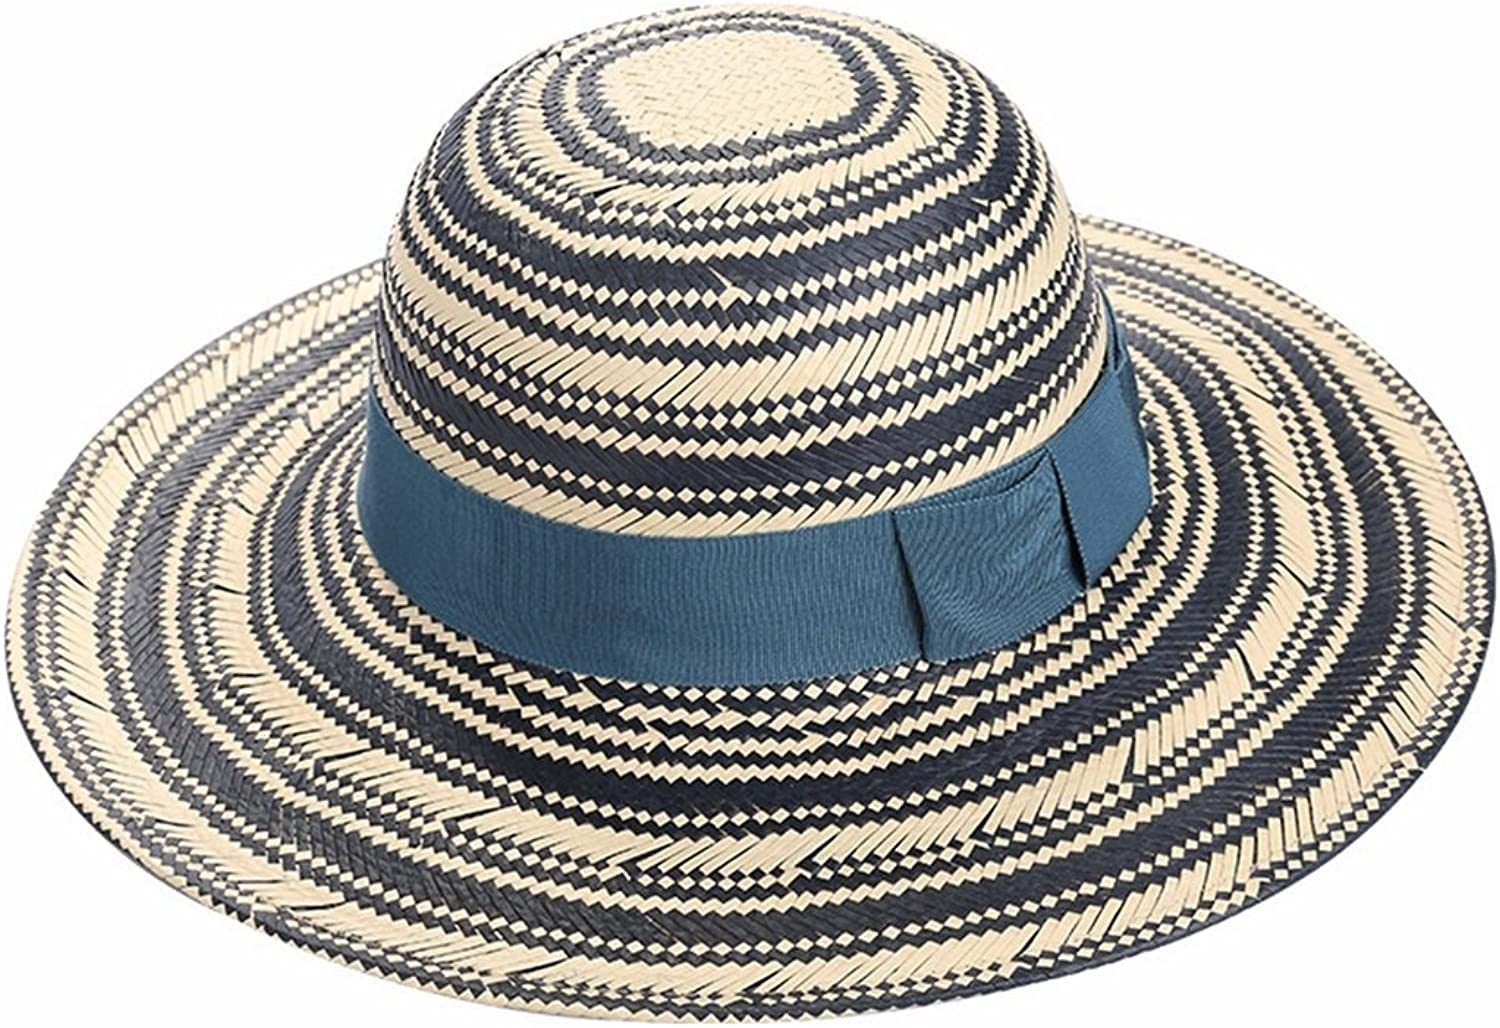 LBY Hat Female Summer Casual Classic Straw Hat Fashion Trend Sun Hat Female Small Hat Travel Sun Hat Sun Hats (color   This Room bluee G32 G45, Size   M(5658cm))